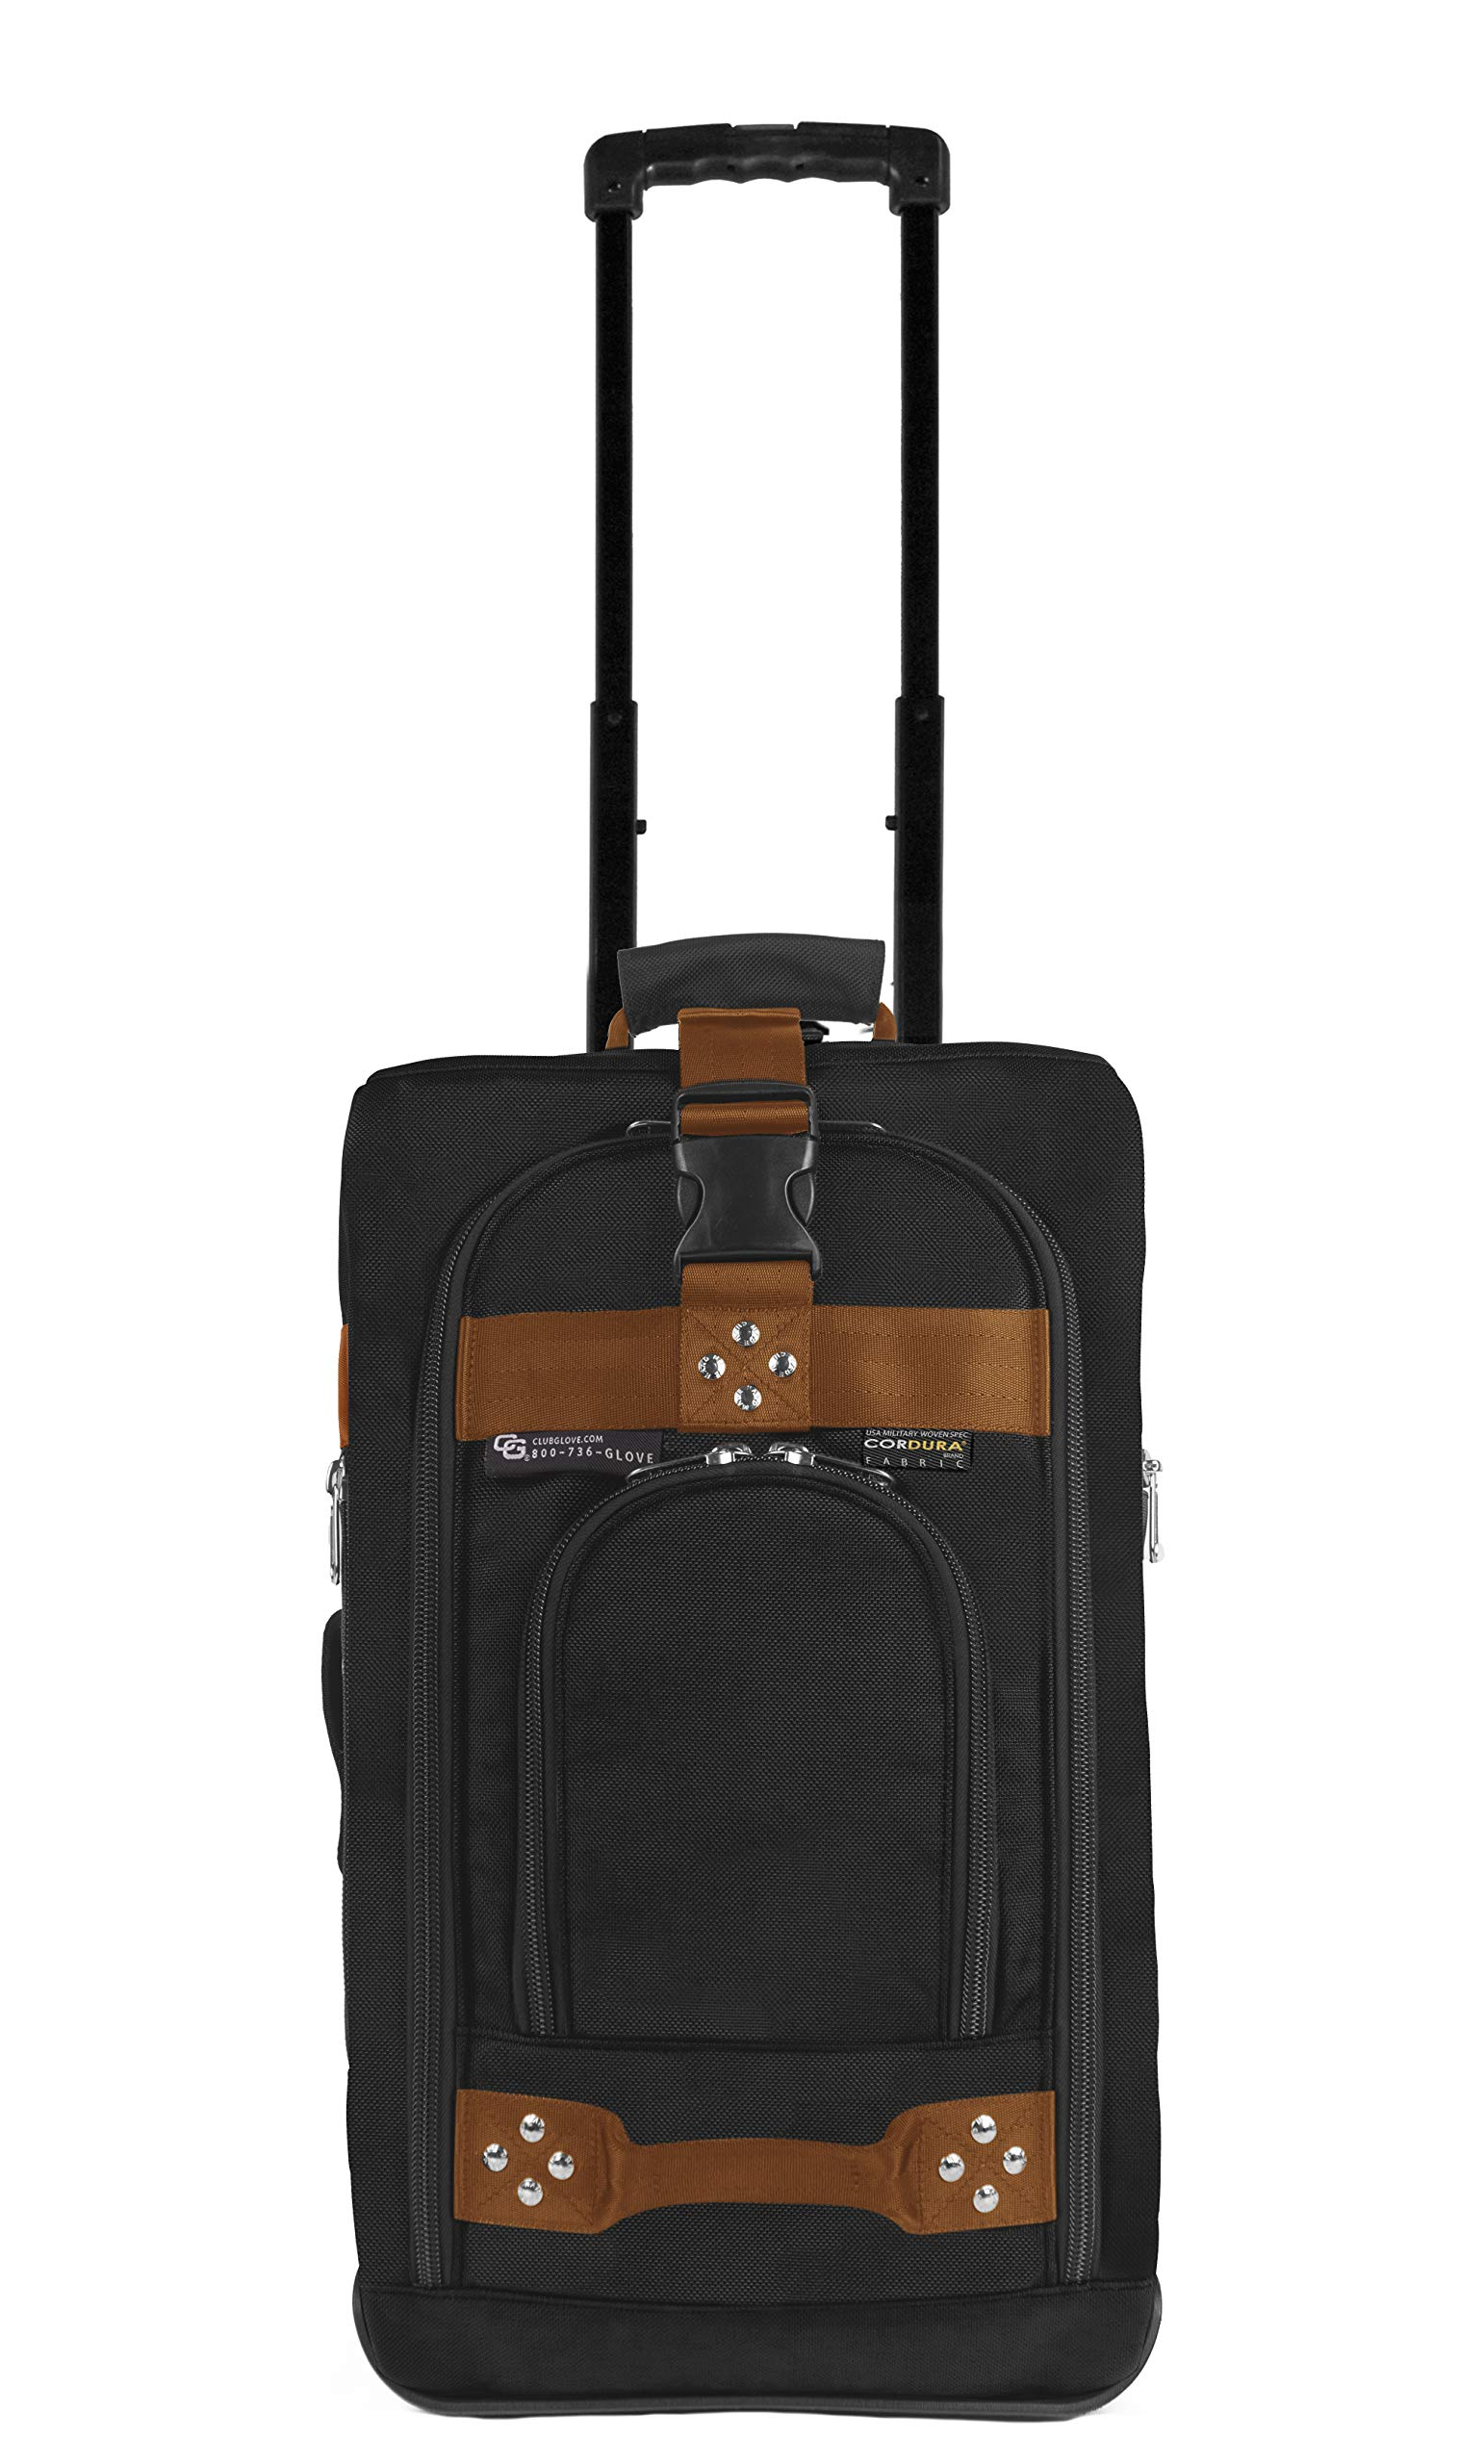 Club Glove Carry On Bag III Travel Luggage (Black/Copper)